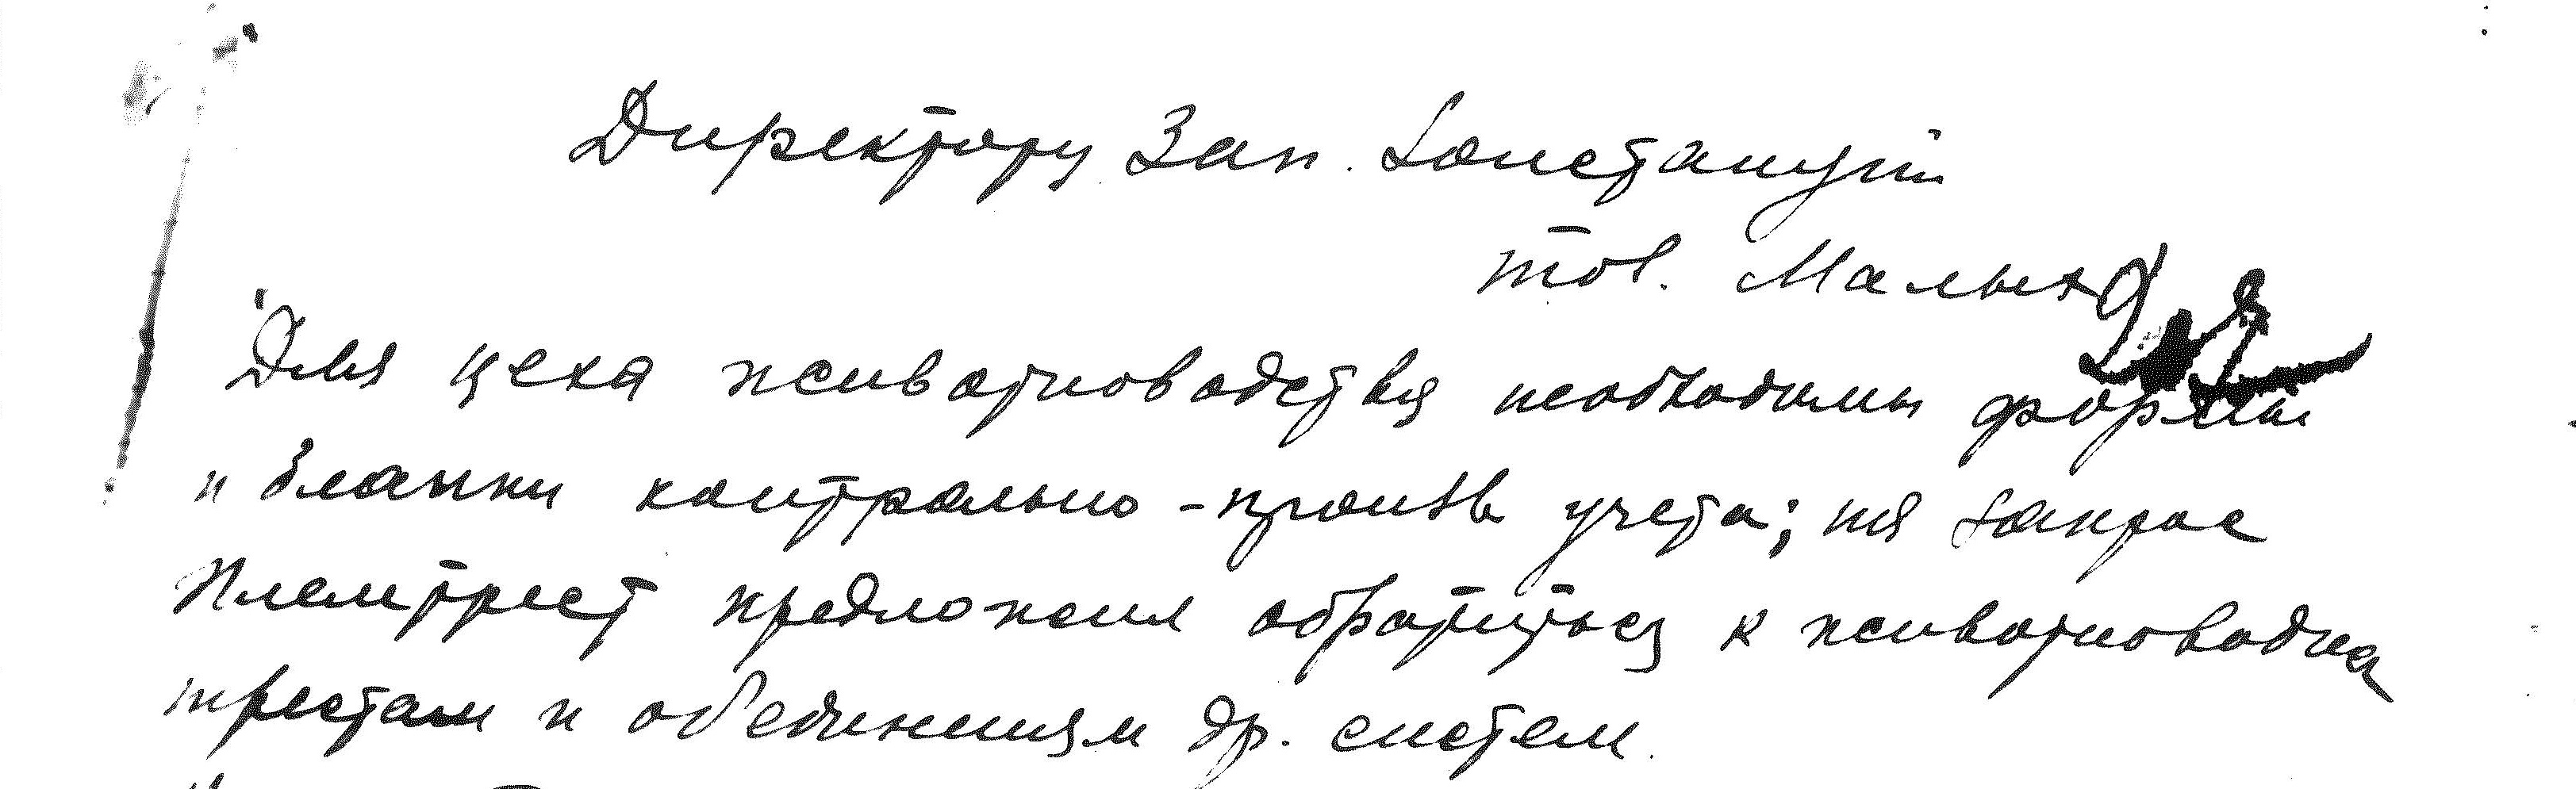 [Records of the All-Union Communist Party, Smolensk District, 1917-41.], ser.2:file116/171:pt.3